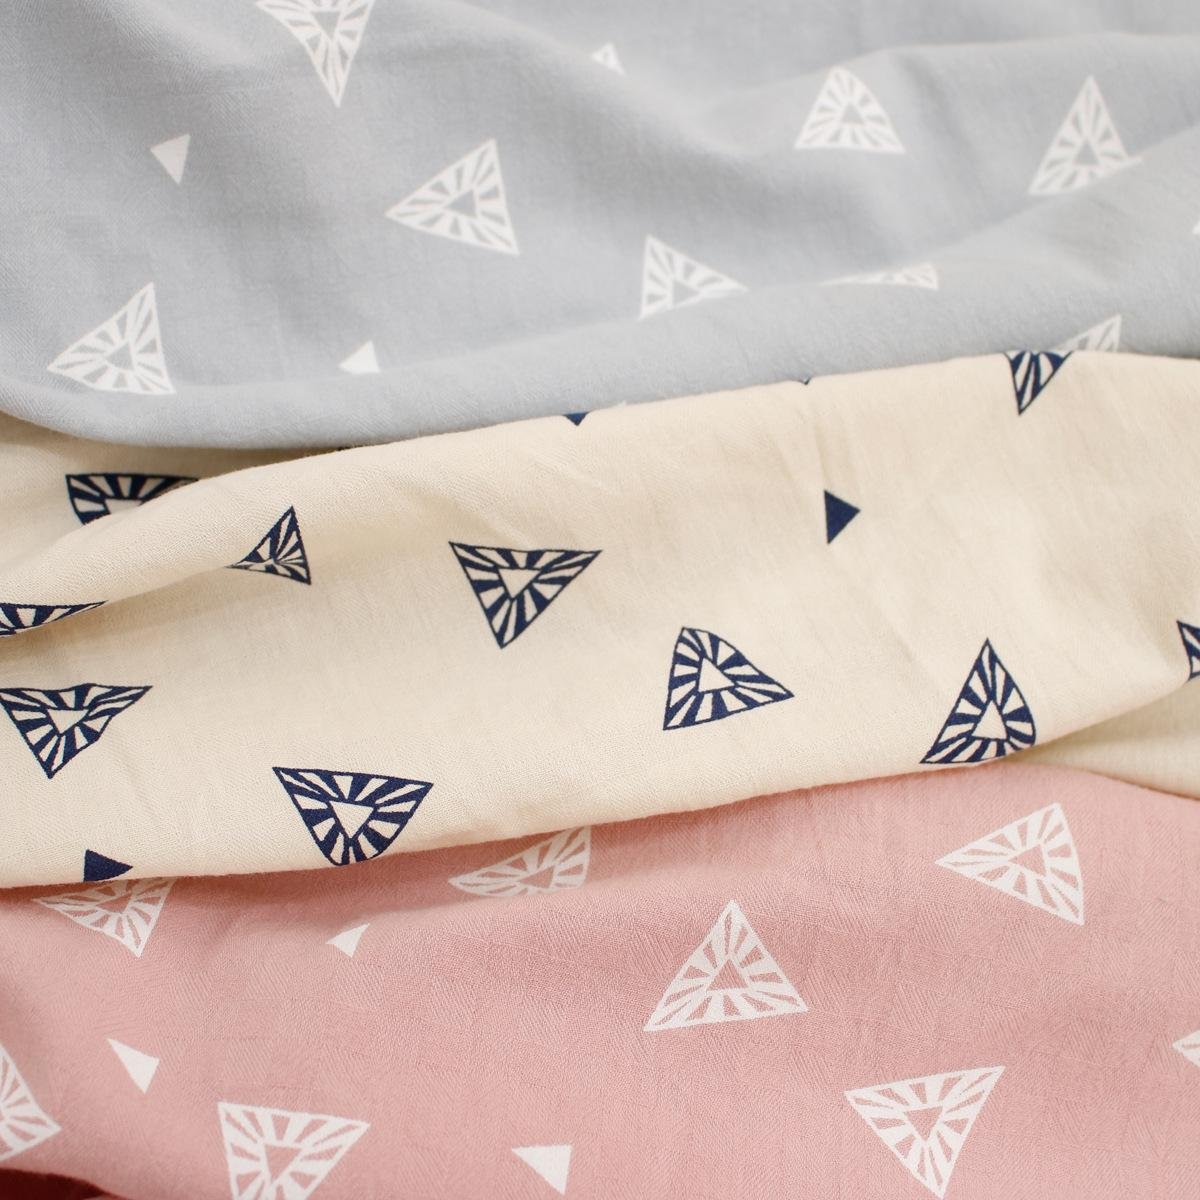 2020 Spring and Summer Triangle Geometric Printing Washed Cotton Dark Plaid Fashion Jacquard Children 's Clothing Fabric